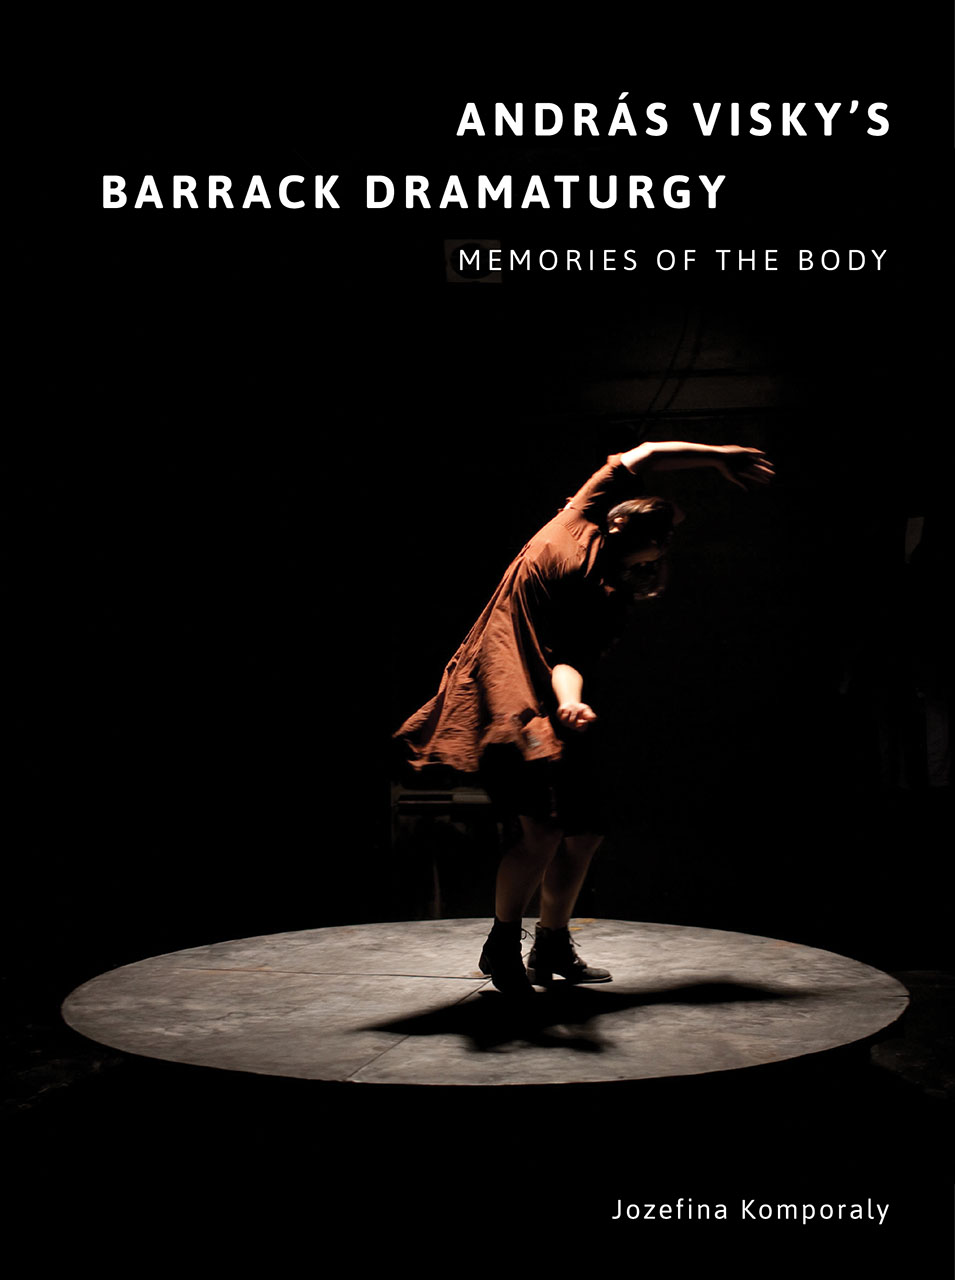 András Visky's Barrack Dramaturgy: Memories of the Body